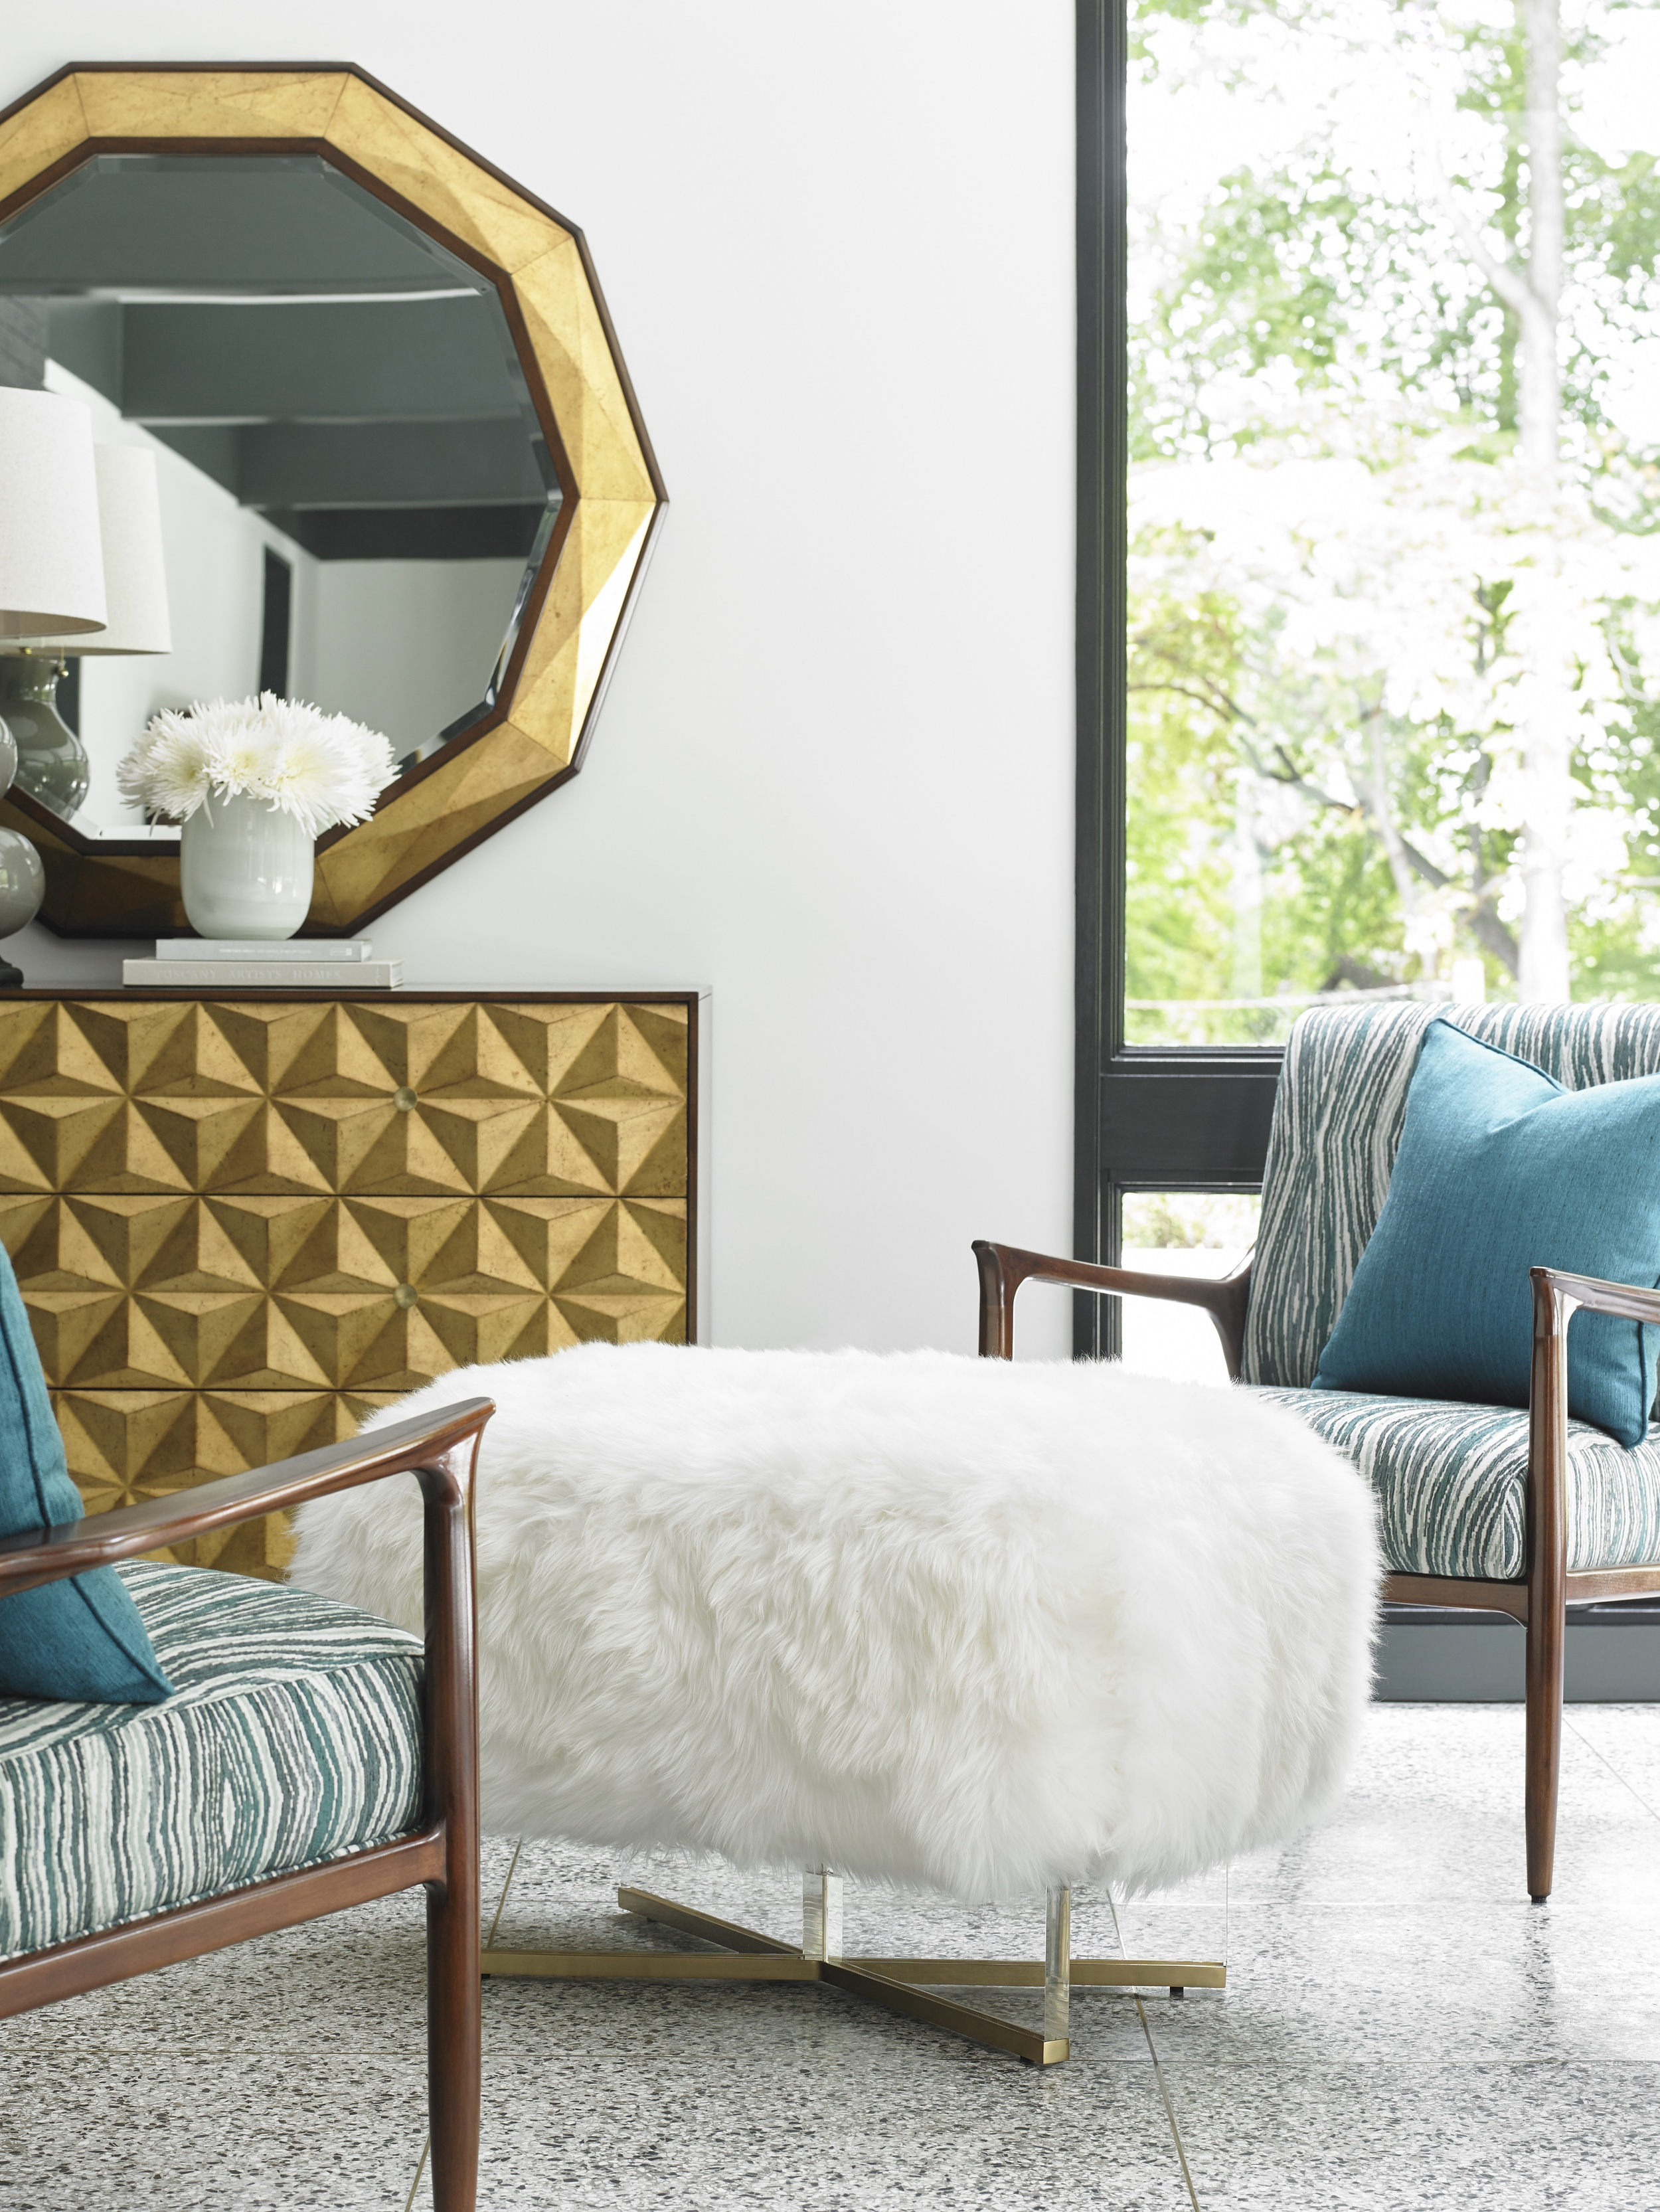 A chic ottoman with a brass-plated stainless steel base and polished acrylic legs, upholstered in Australian sheepskin. From Lexington Home Brand's Take Five Collection. Photo: Courtesy of Lexington Home Brands.